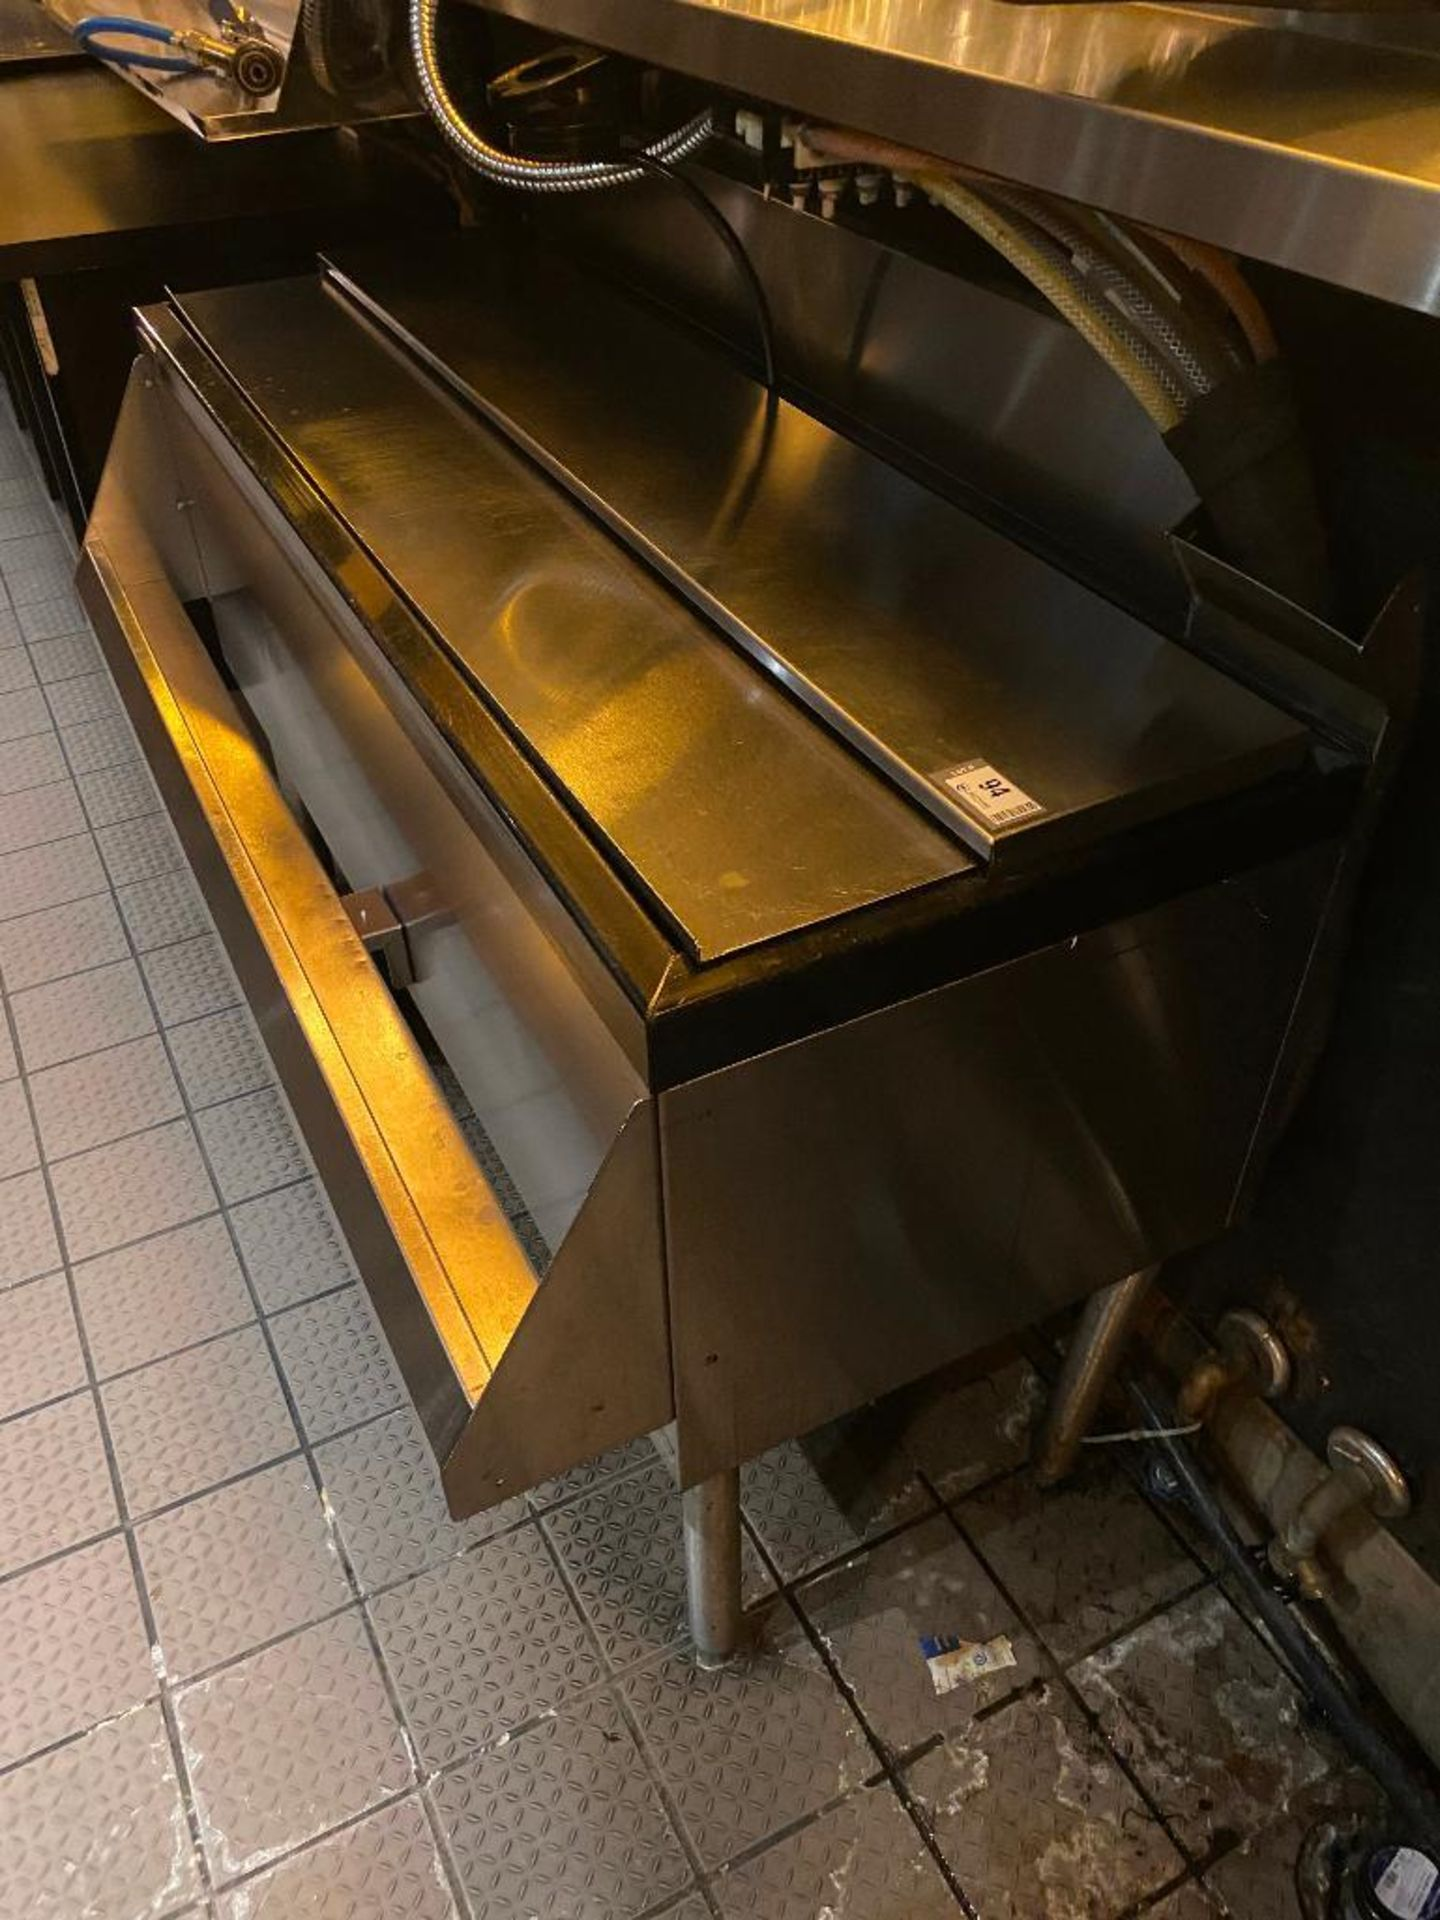 PERLICK STAINLESS STEEL ICE BIN WITH SINGLE SPEED RAIL - NOTE: REQUIRES DISCONNECT, PLEASE INSPECT - Image 4 of 5